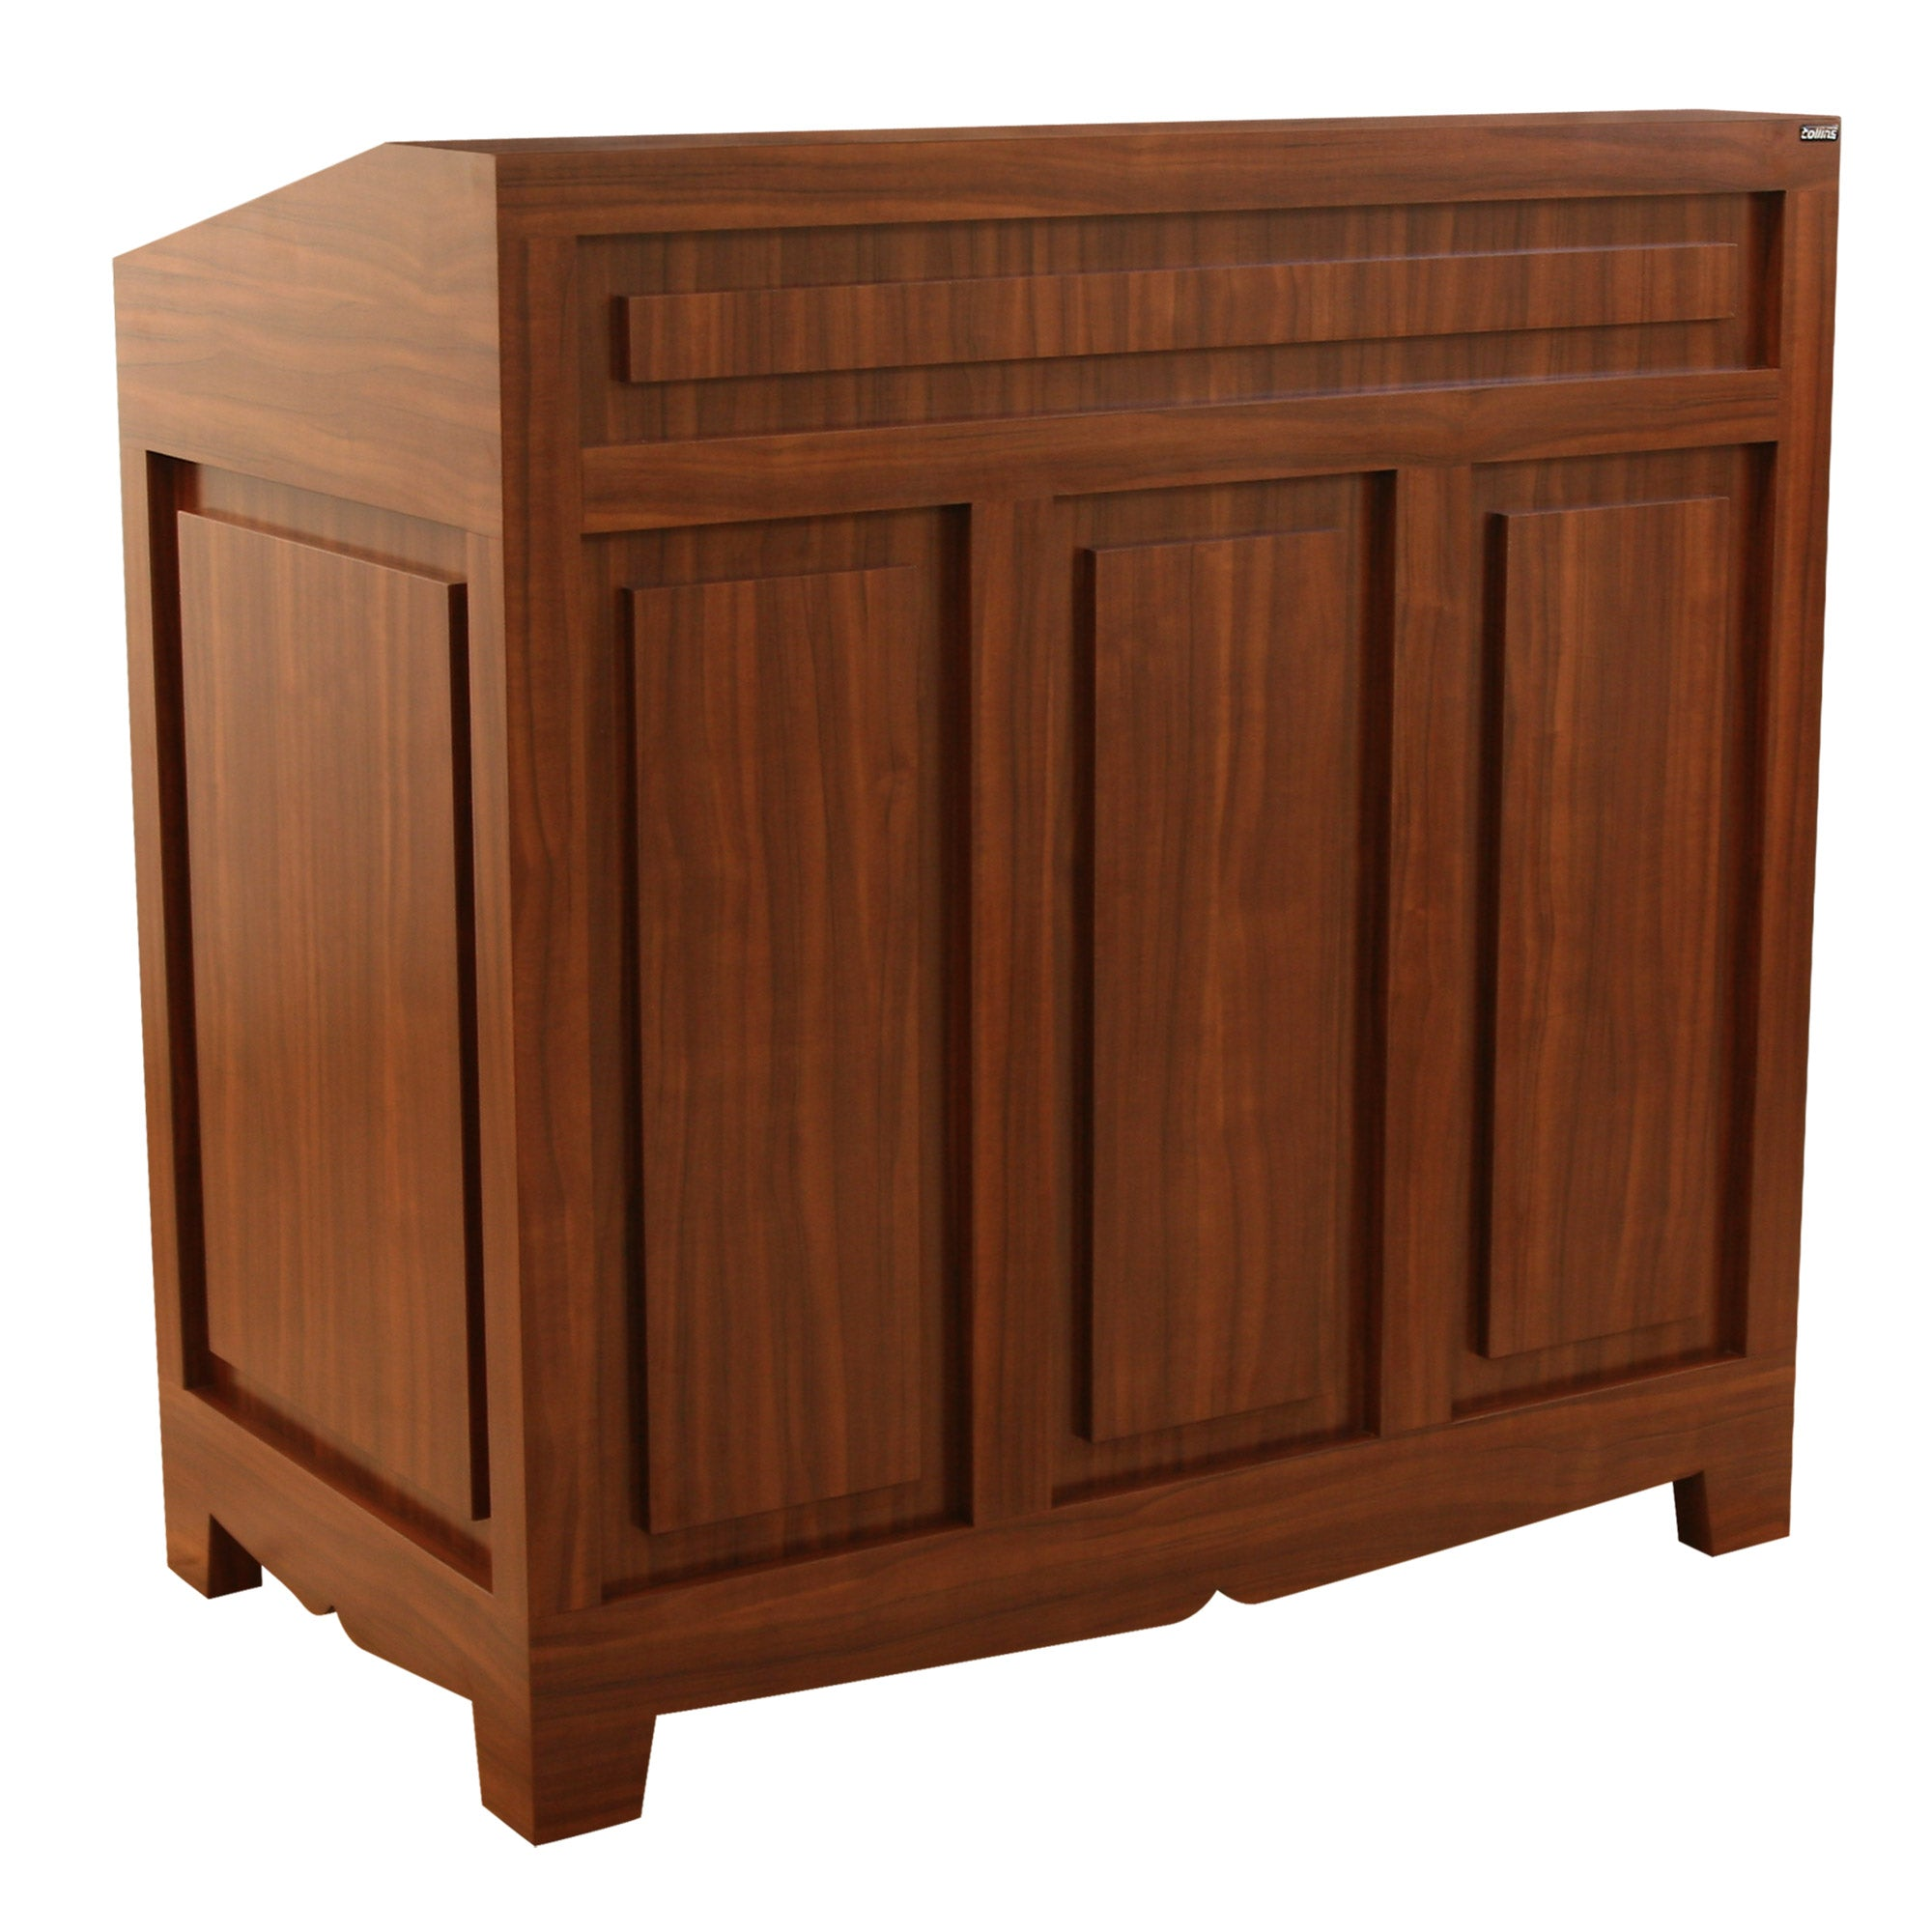 Bradford Concierge Desk - Collins